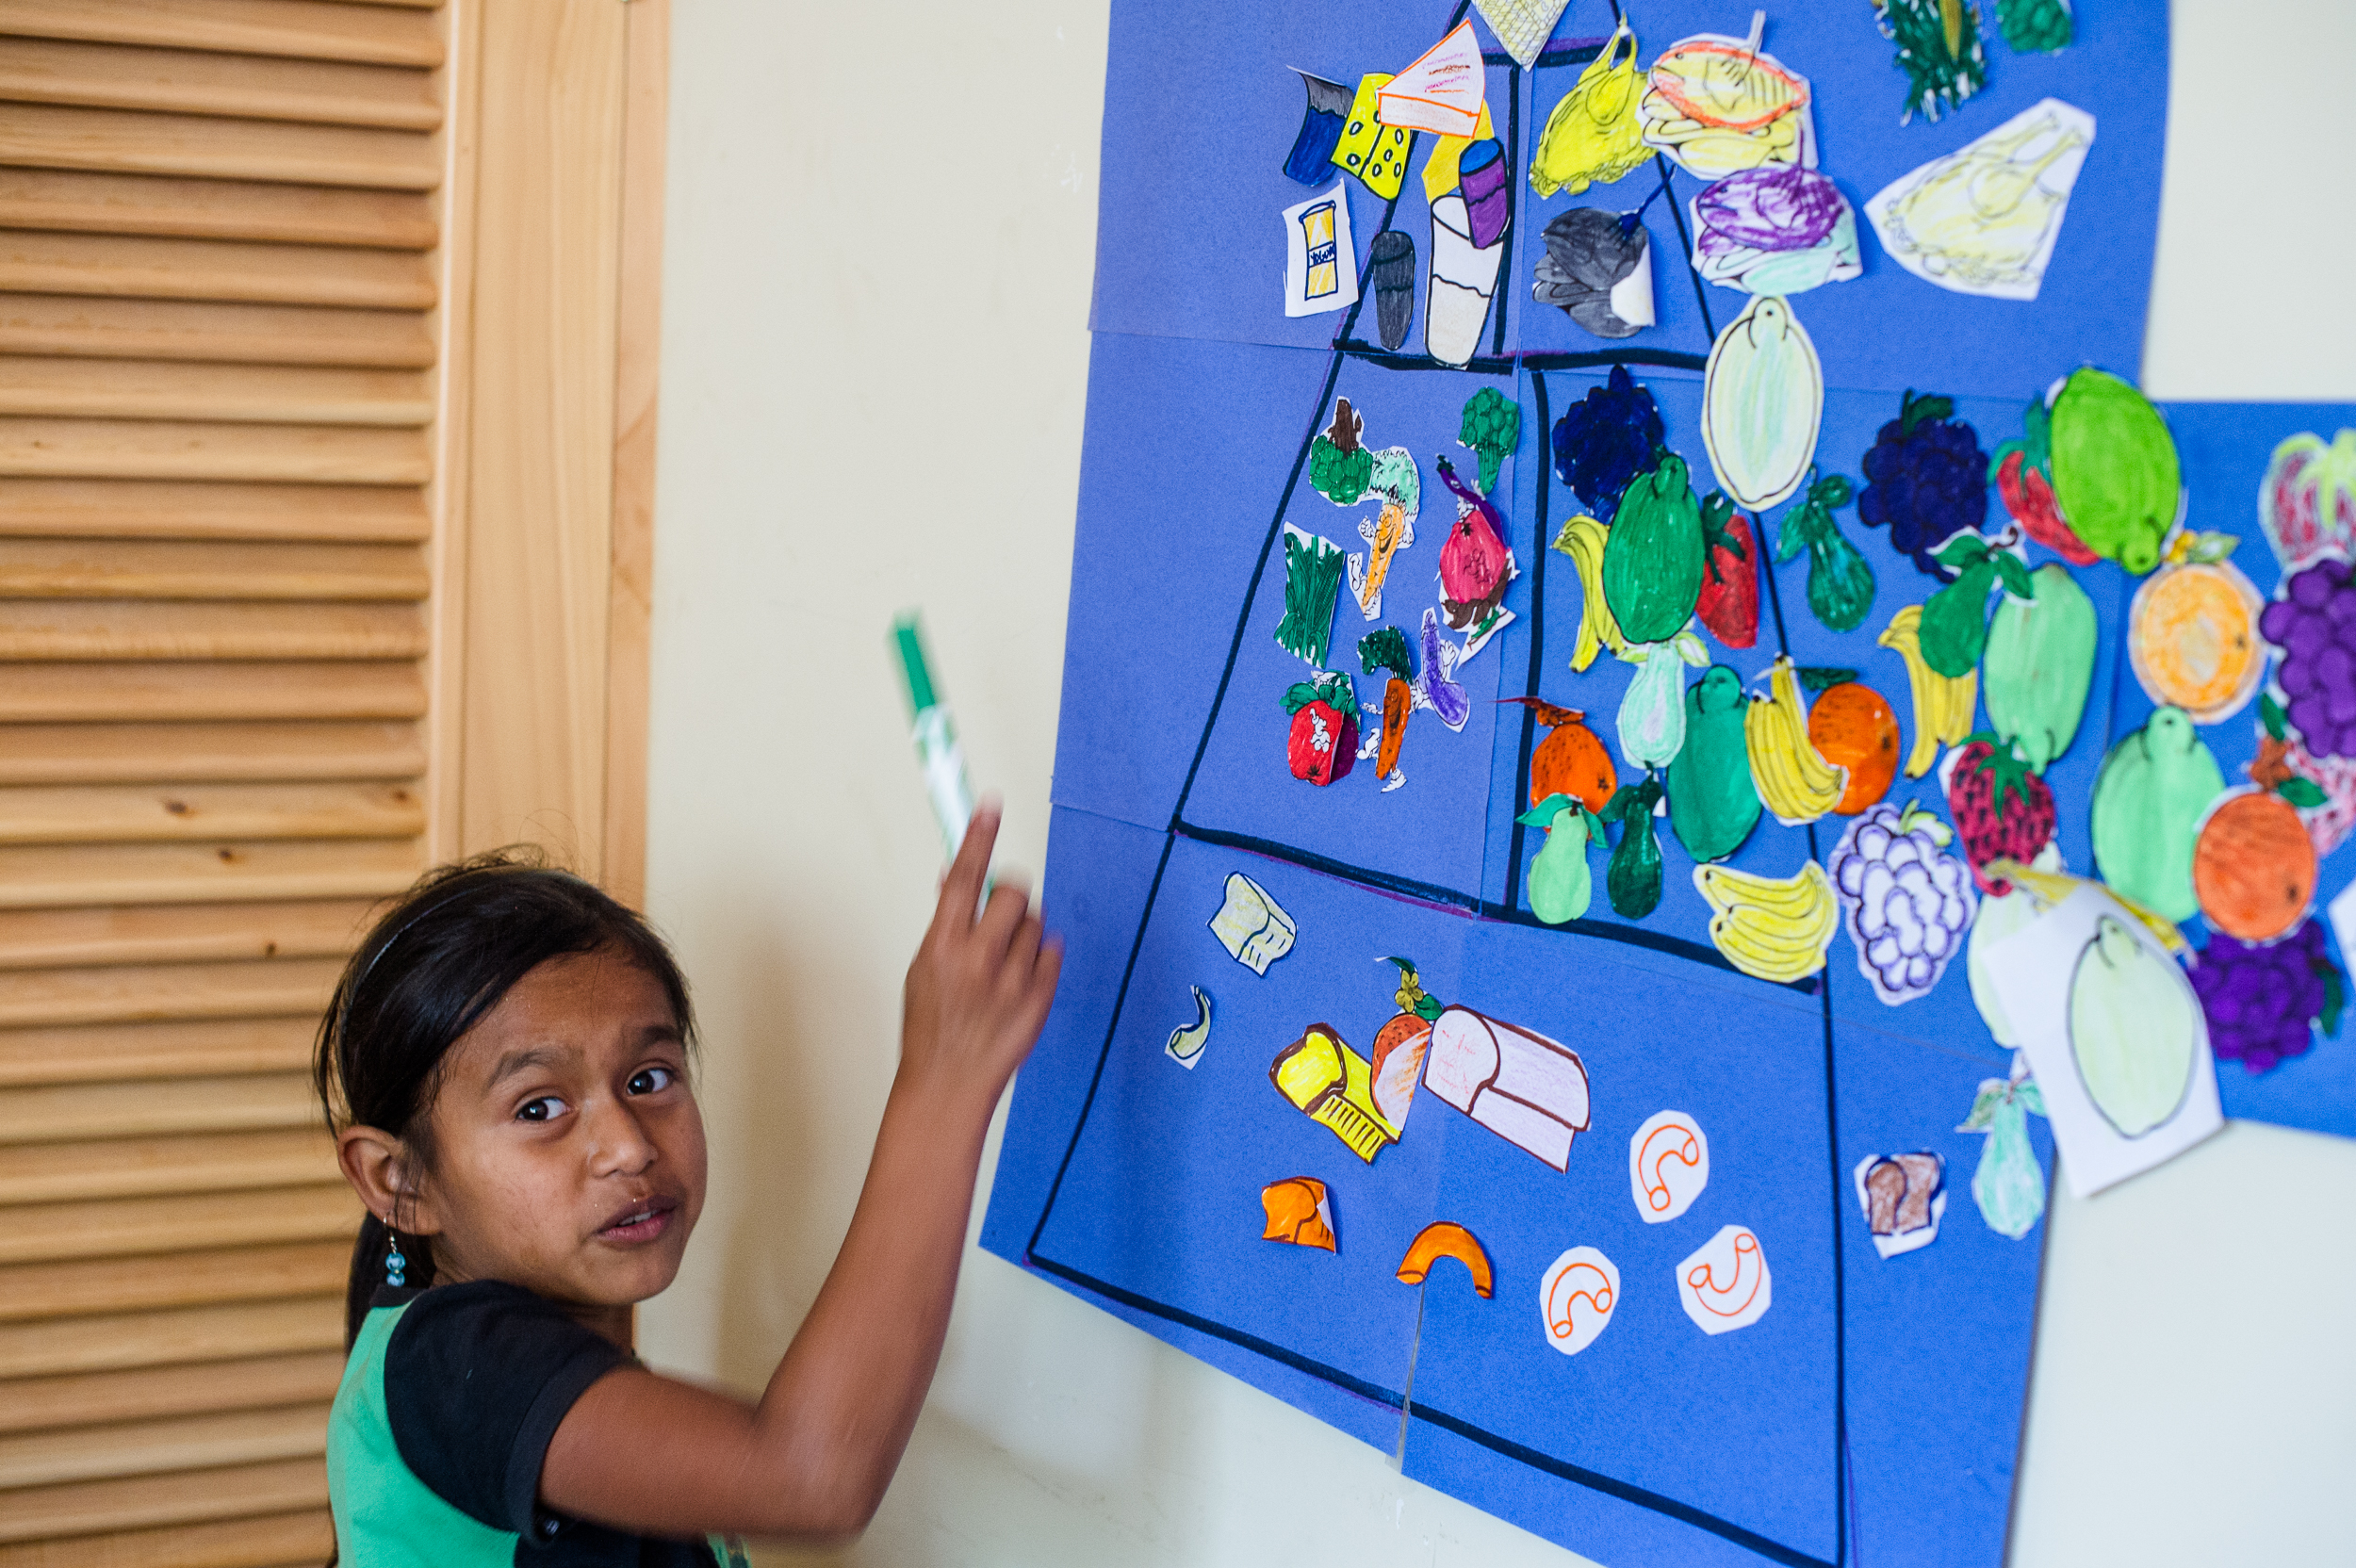 Esperanza leads the class through an activity on the food pyramid. While Santa Cruz remains a difficult place to reach, junk food is pervasive. Some mothers put cola in their infant children's baby bottles because they confuse the spike in attentiveness that comes with a high dose of sugar and caffeine with it being nutritious.